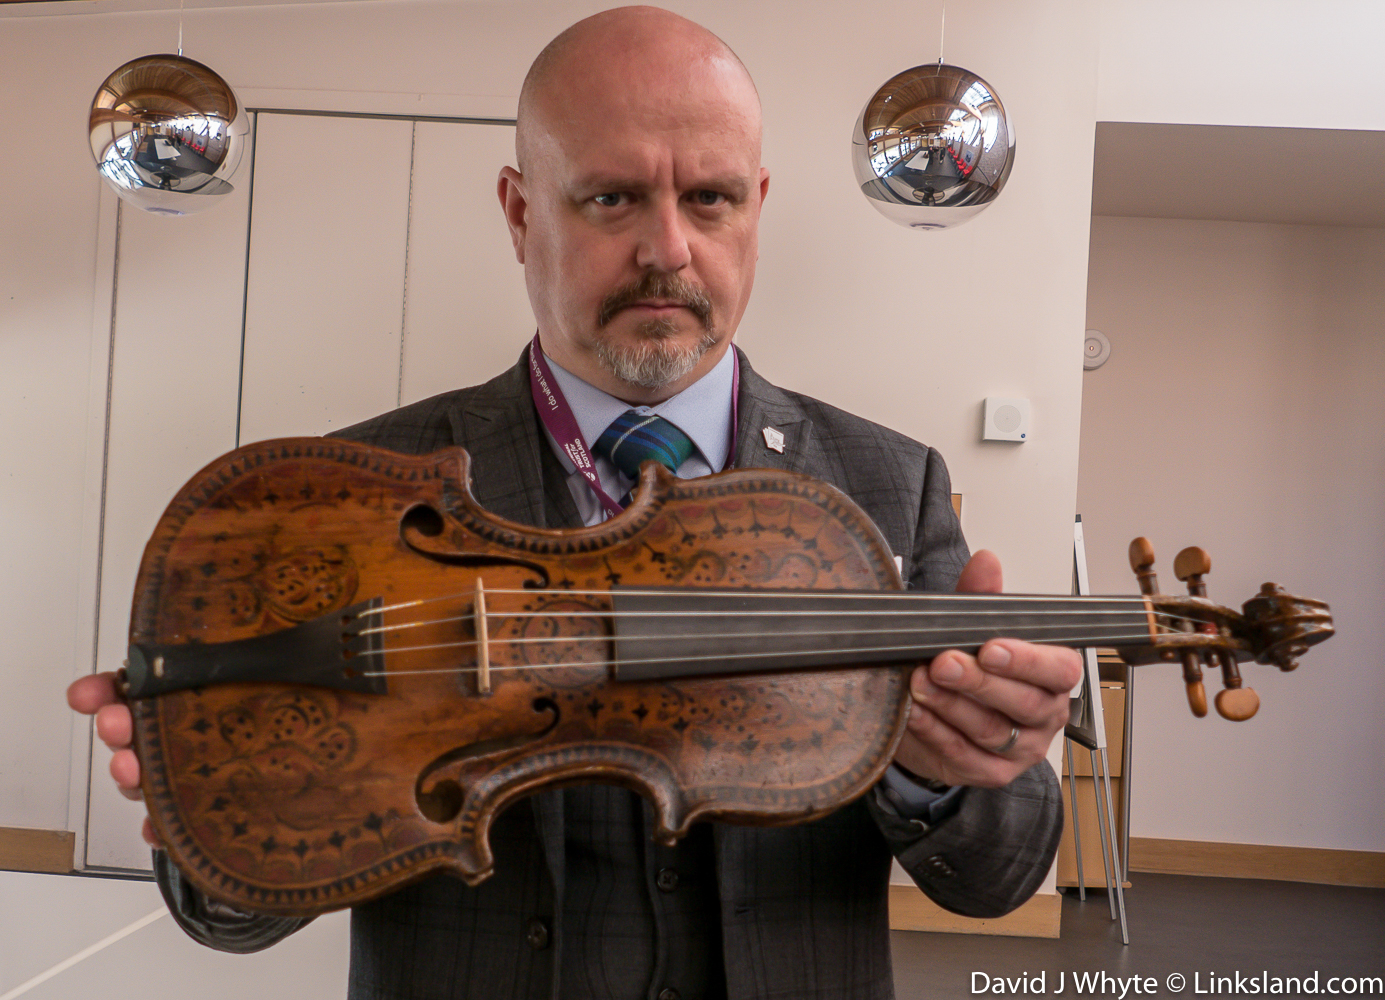 In 1779, the adolescent Robert Burns attended dancing lessons in Tarbolton, most likely looking for the opportunity to meet young ladies. His dance teacher William Gregg played this fiddle while Robert learned the steps.